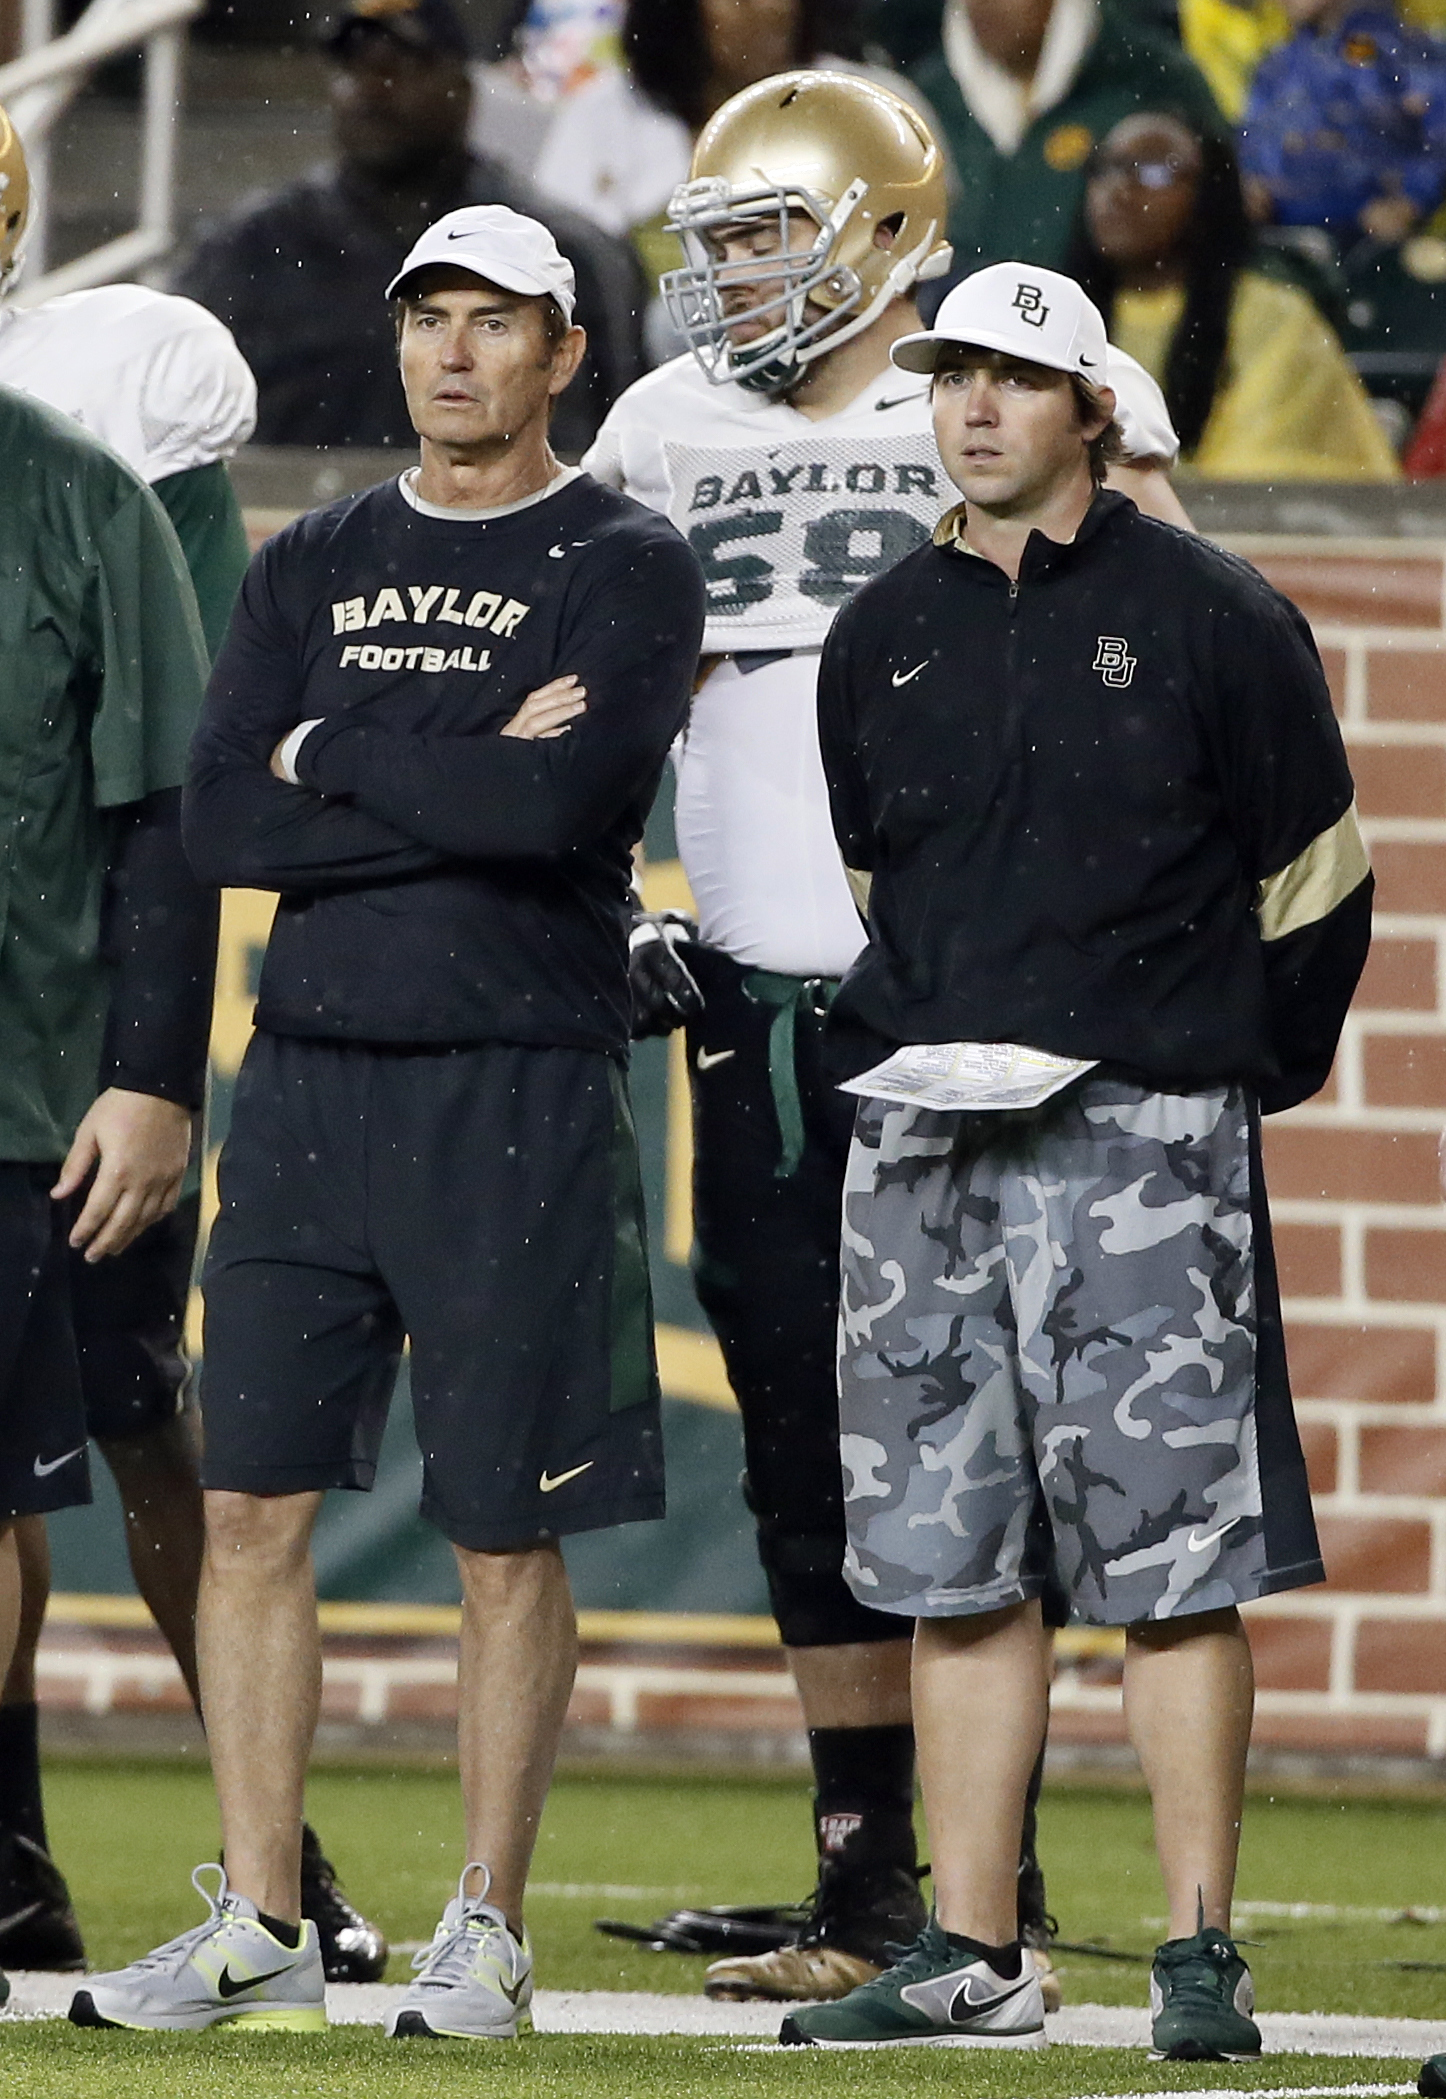 FILE - In this March 20, 2015, file photo, then-Baylor coach Art Briles, left, and offensive coordinator Kendal Briles, right, watch a play during the team's NCAA college football intrasquad scrimmage in Waco, Texas. Baylor has kept intact its assistant c